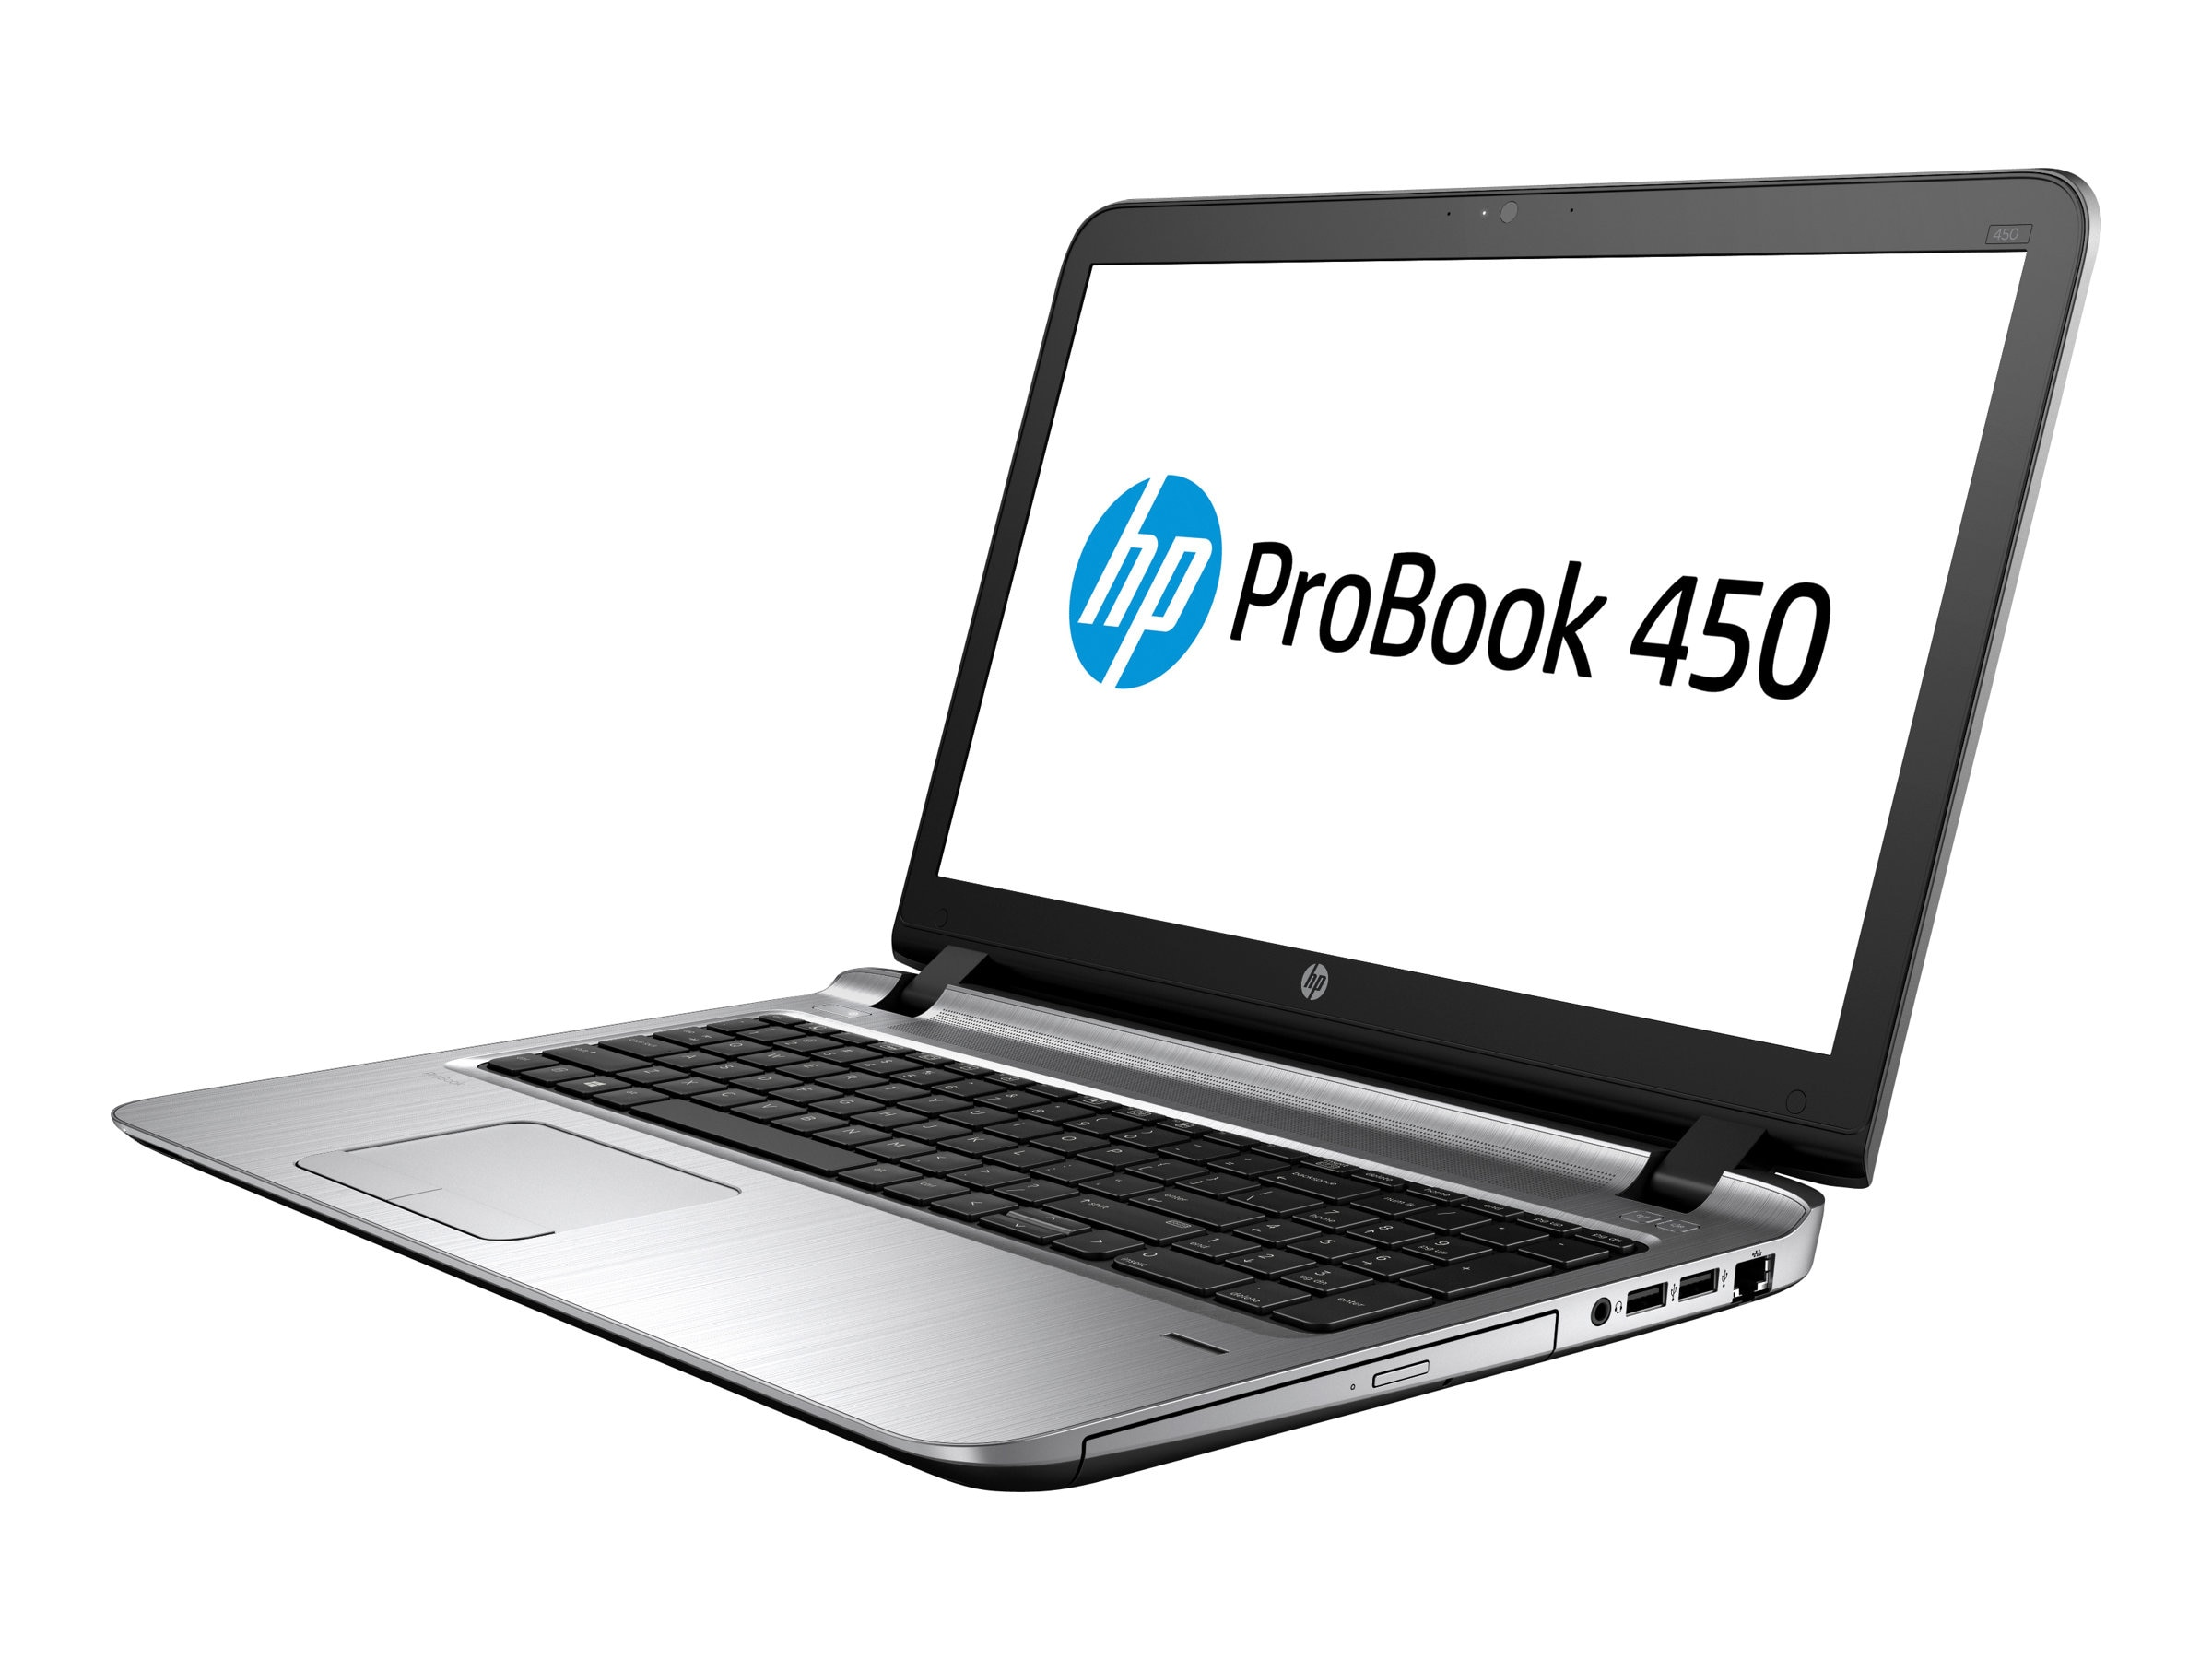 HP ProBook 450 G3 2.3GHz Core i5 15.6in display